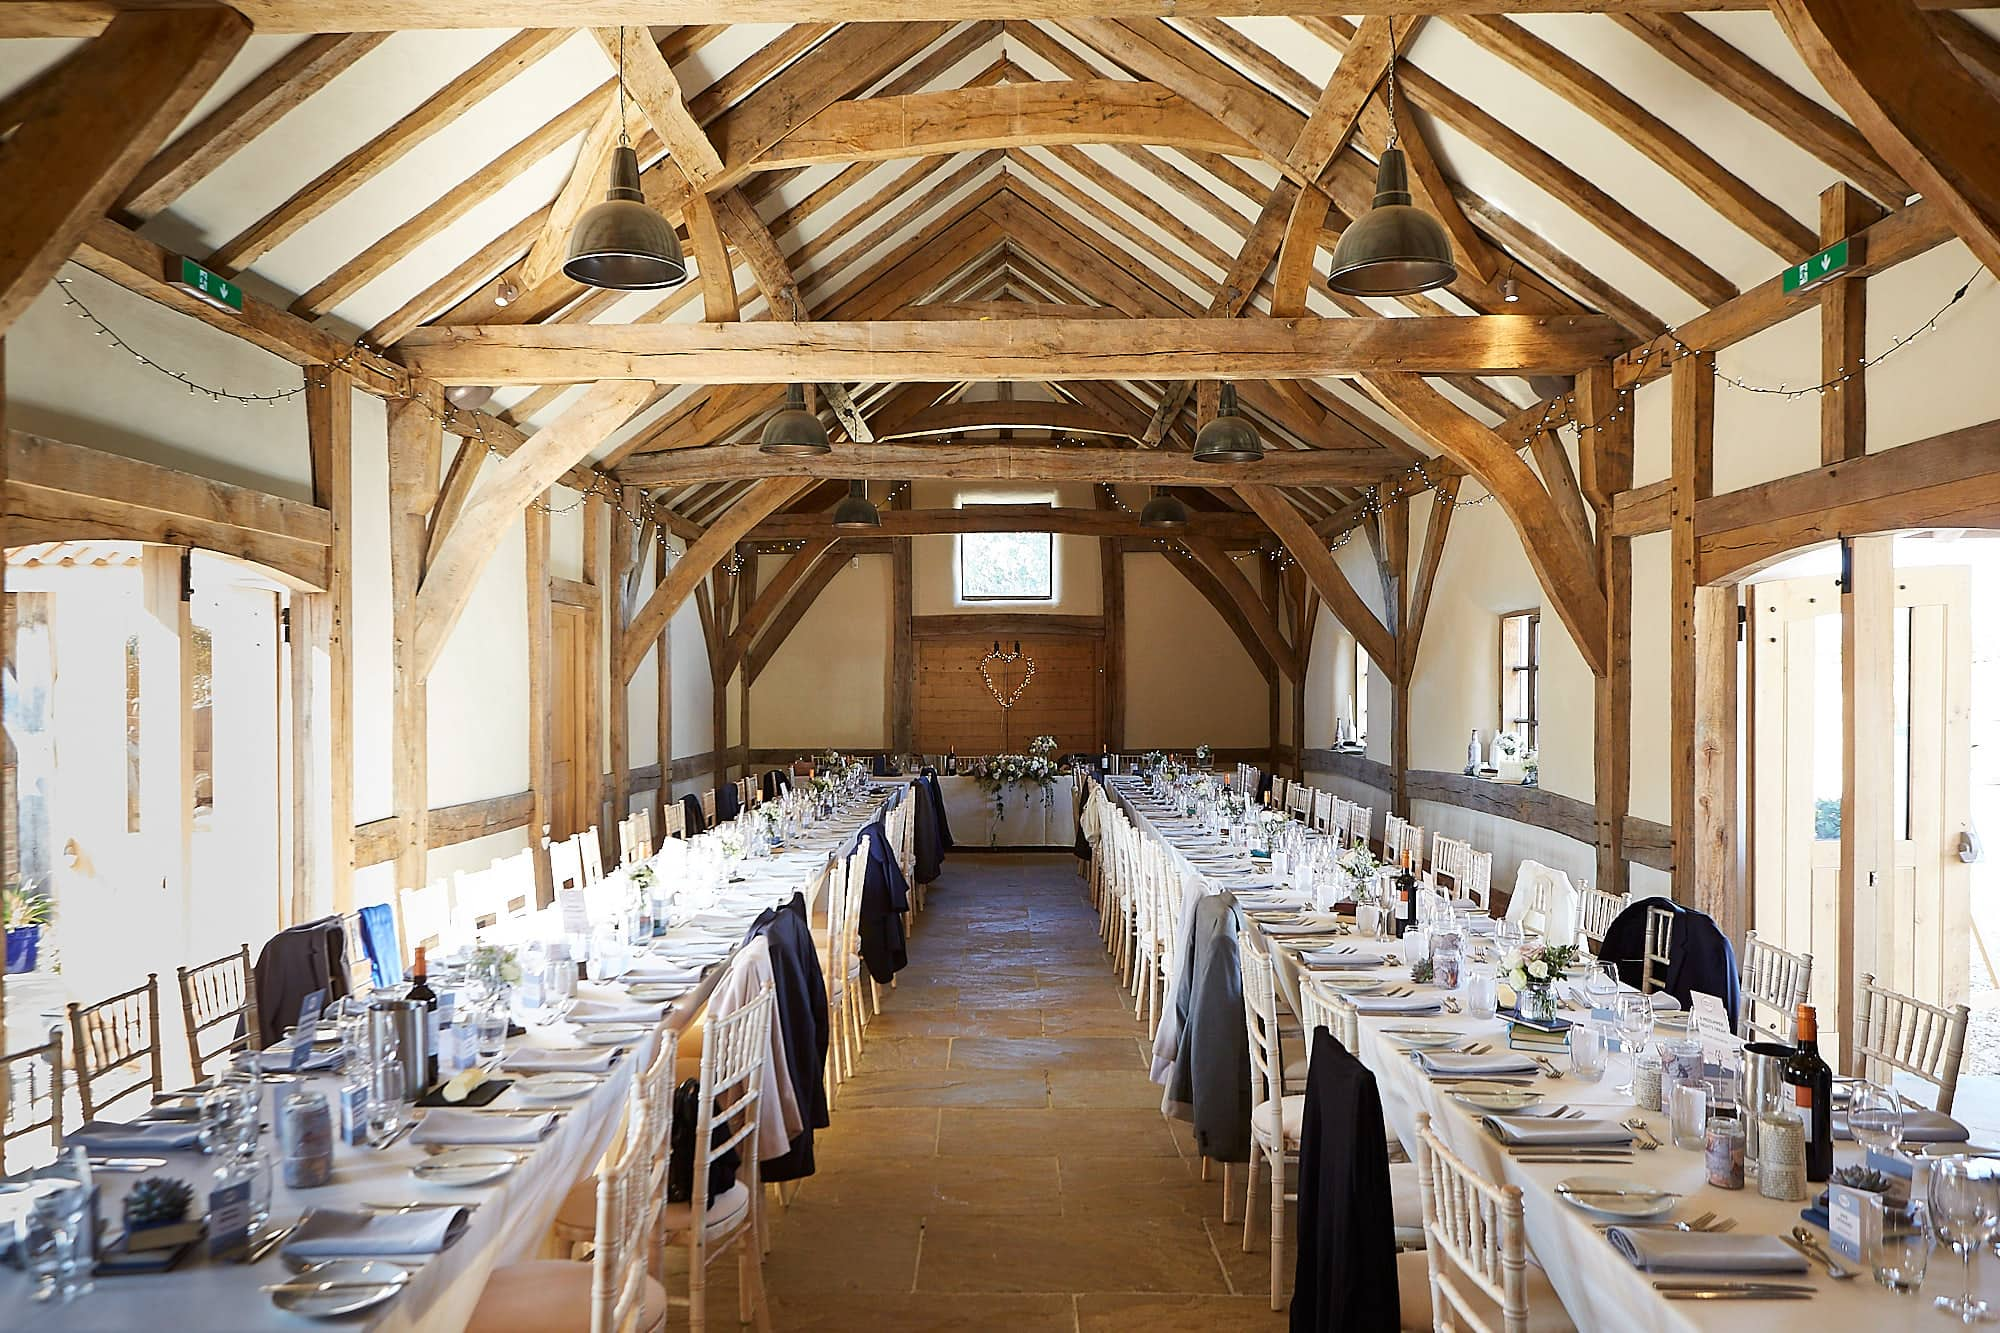 The interior of the main barn at Abbey Farm Weddings. The tables are laid and coats sit on the back of chairs as people enjoy the sunshine outdoors.